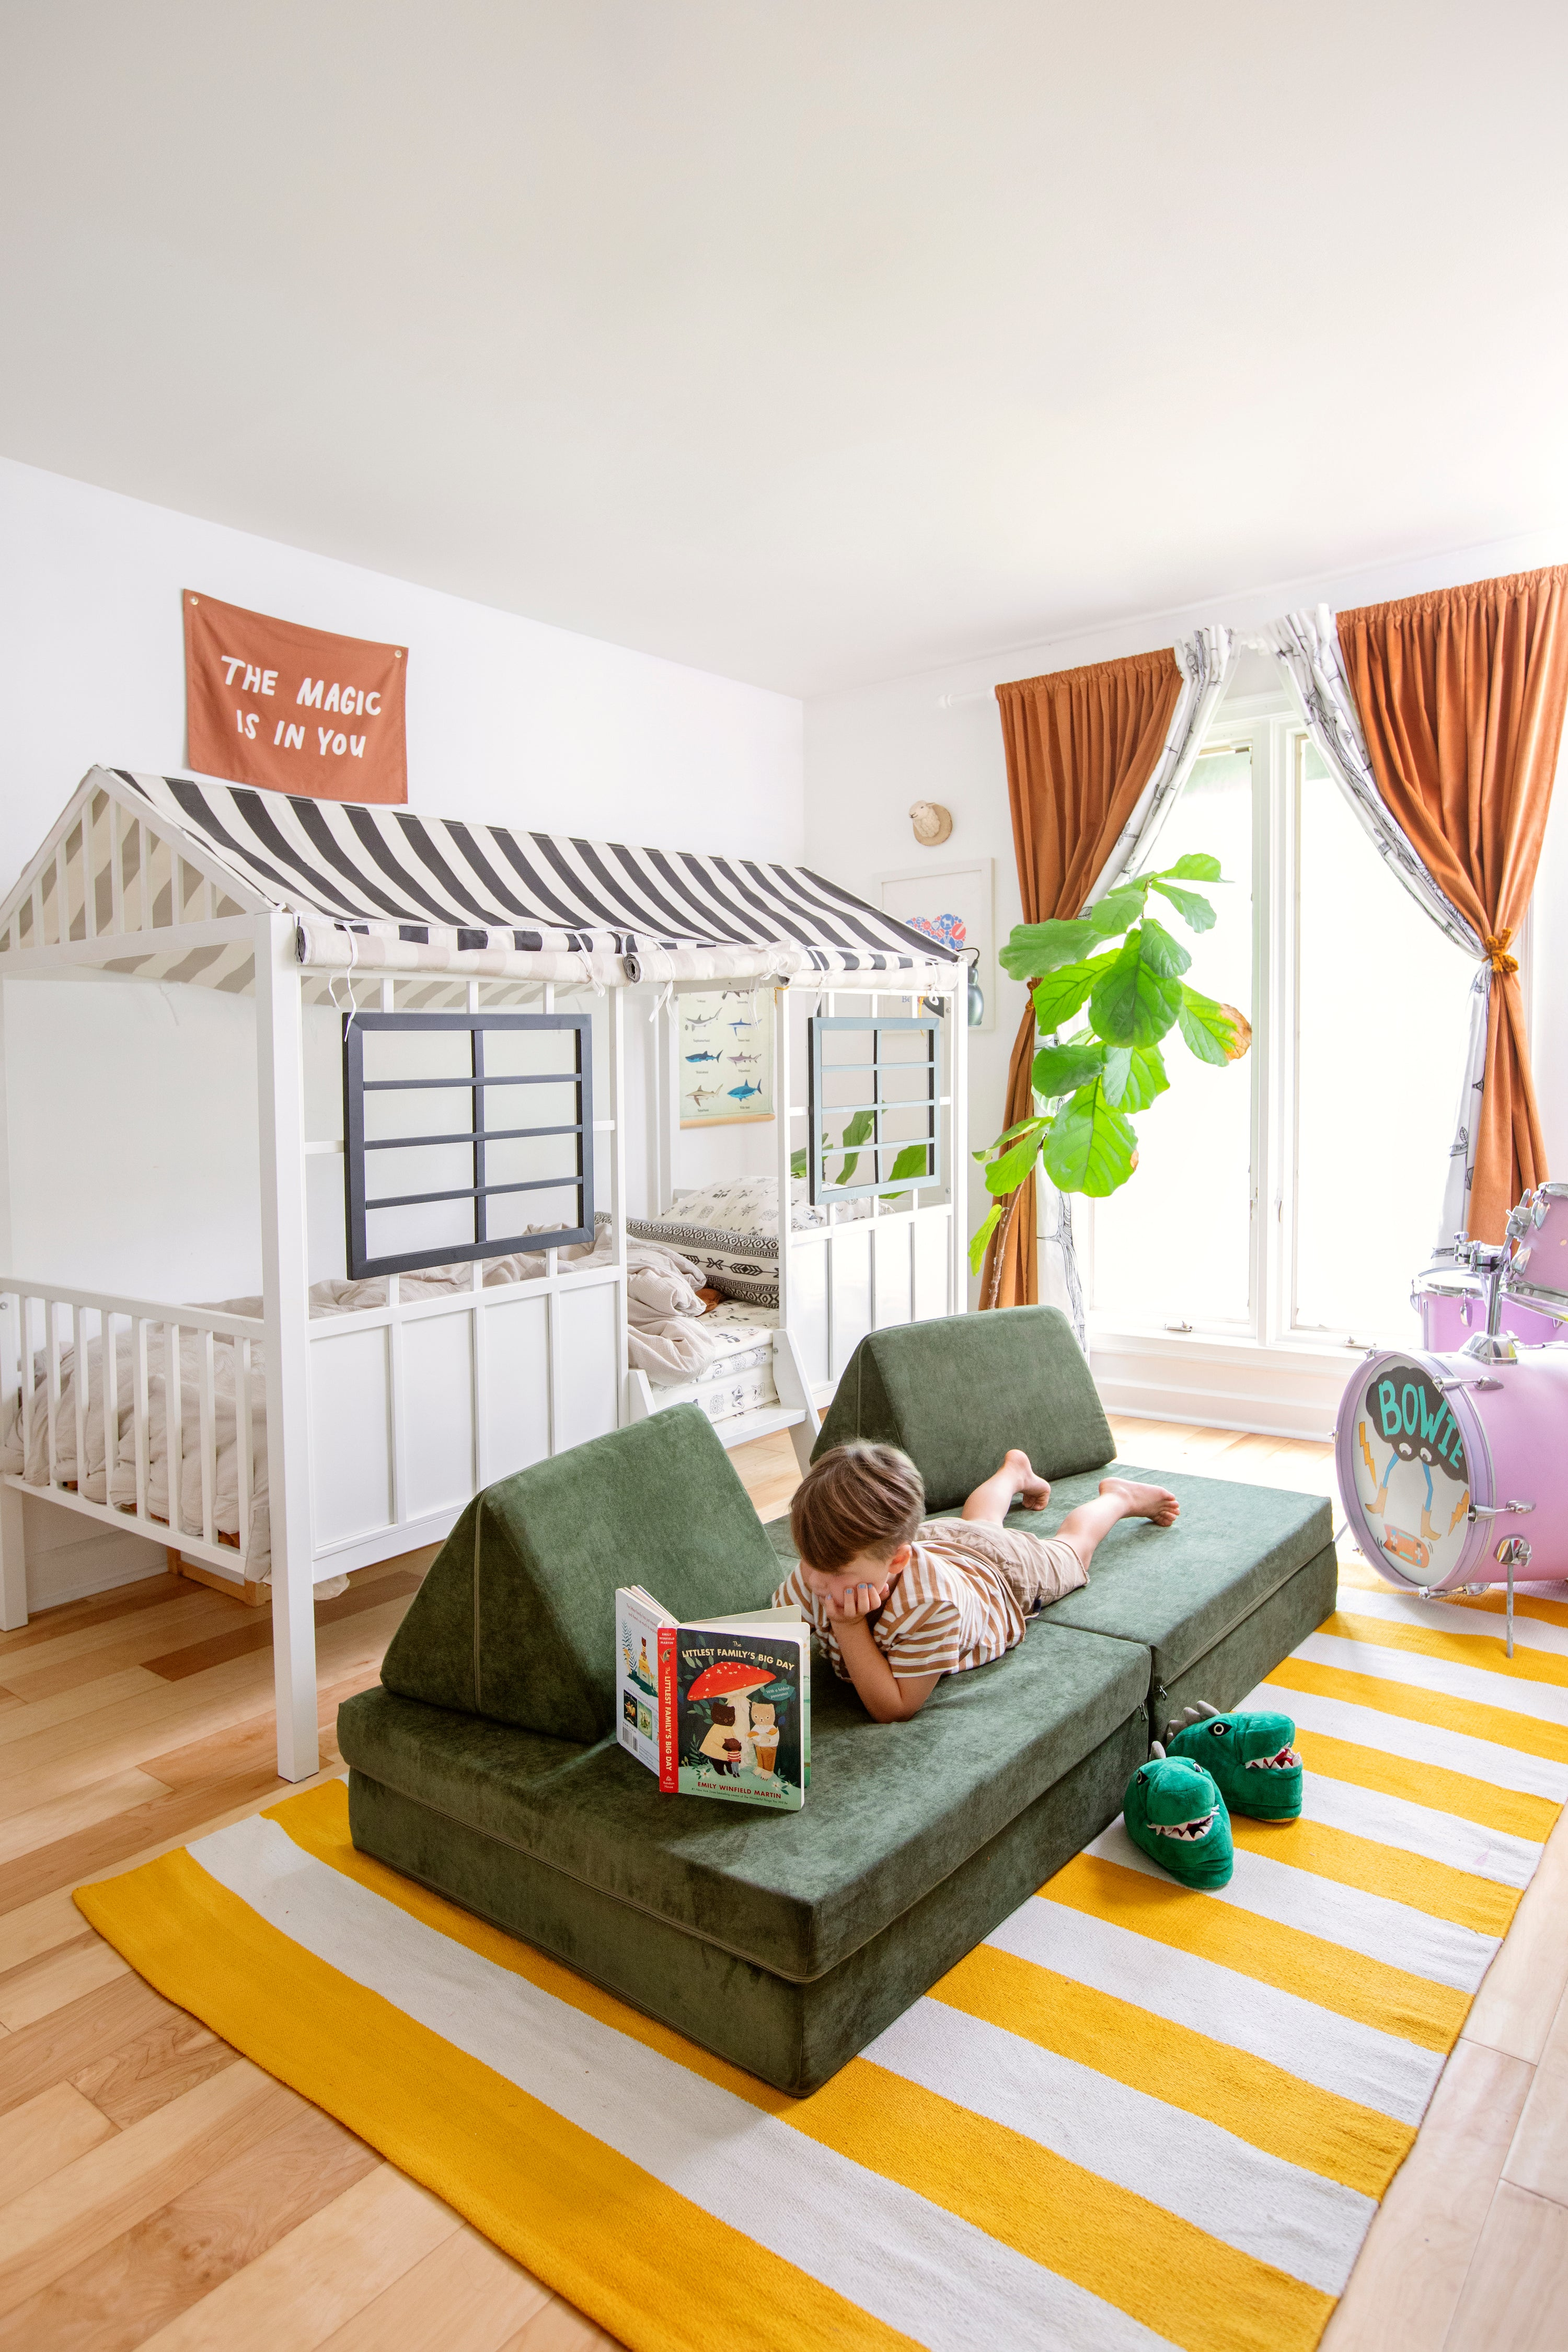 Kid lounging on a Willow Nugget reading a book. Room has a house bed, striped yellow and cream rug, and drum set in right corner